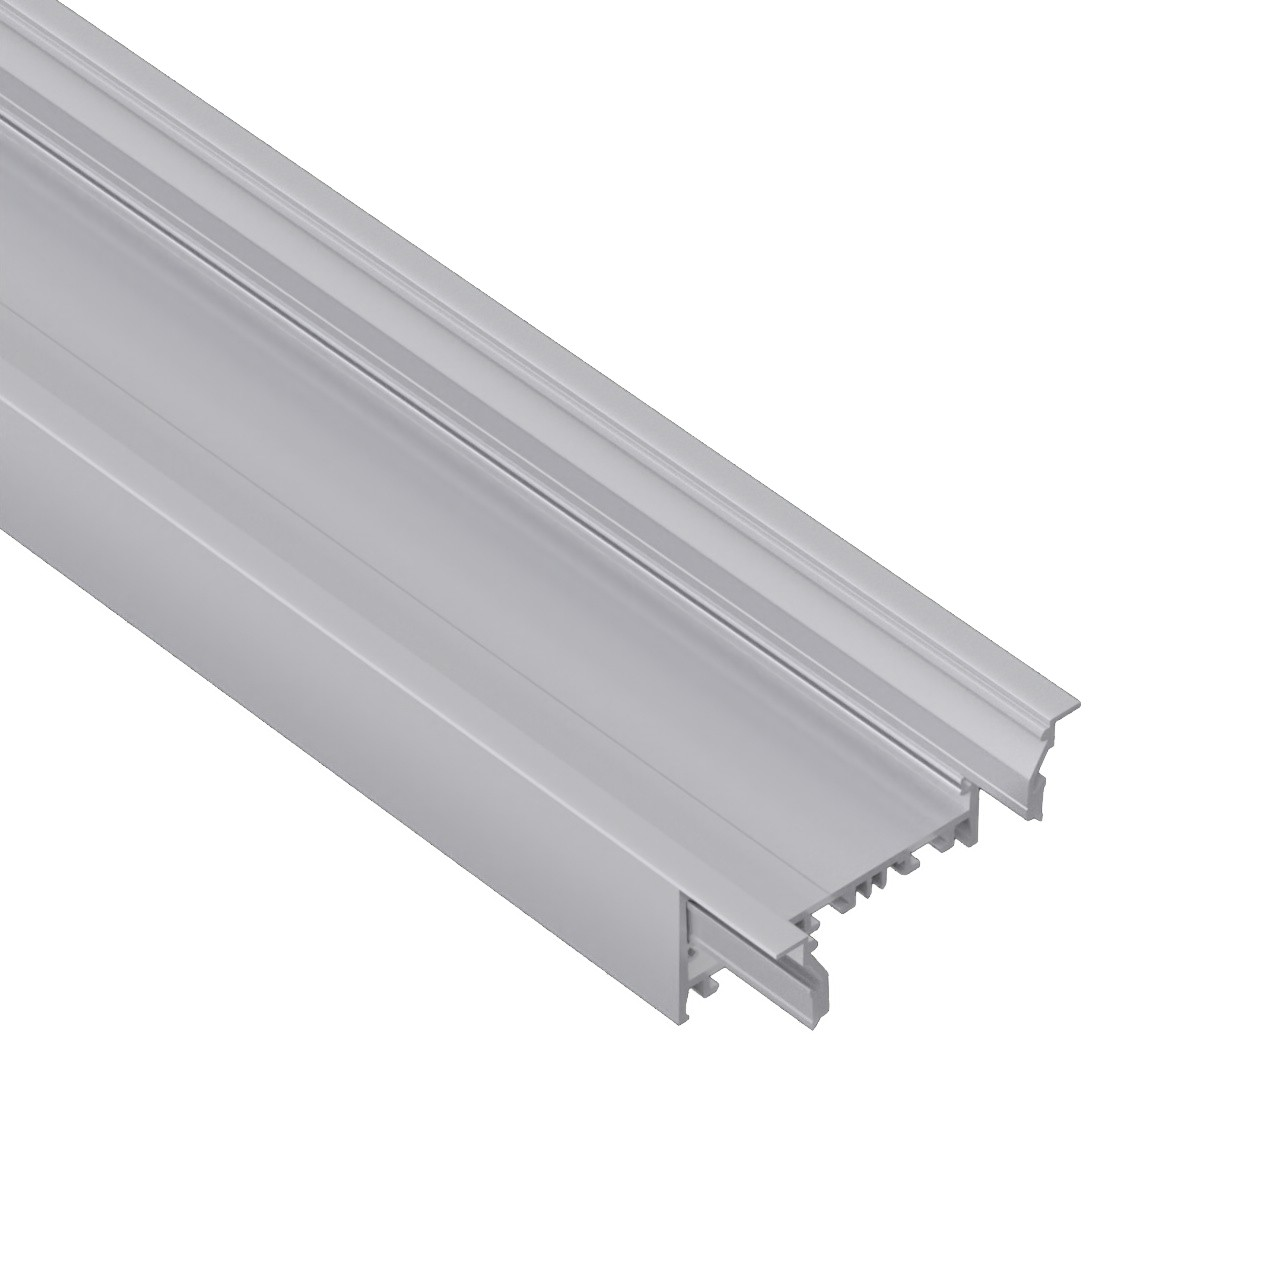 ER80 Led Aluminium Profile